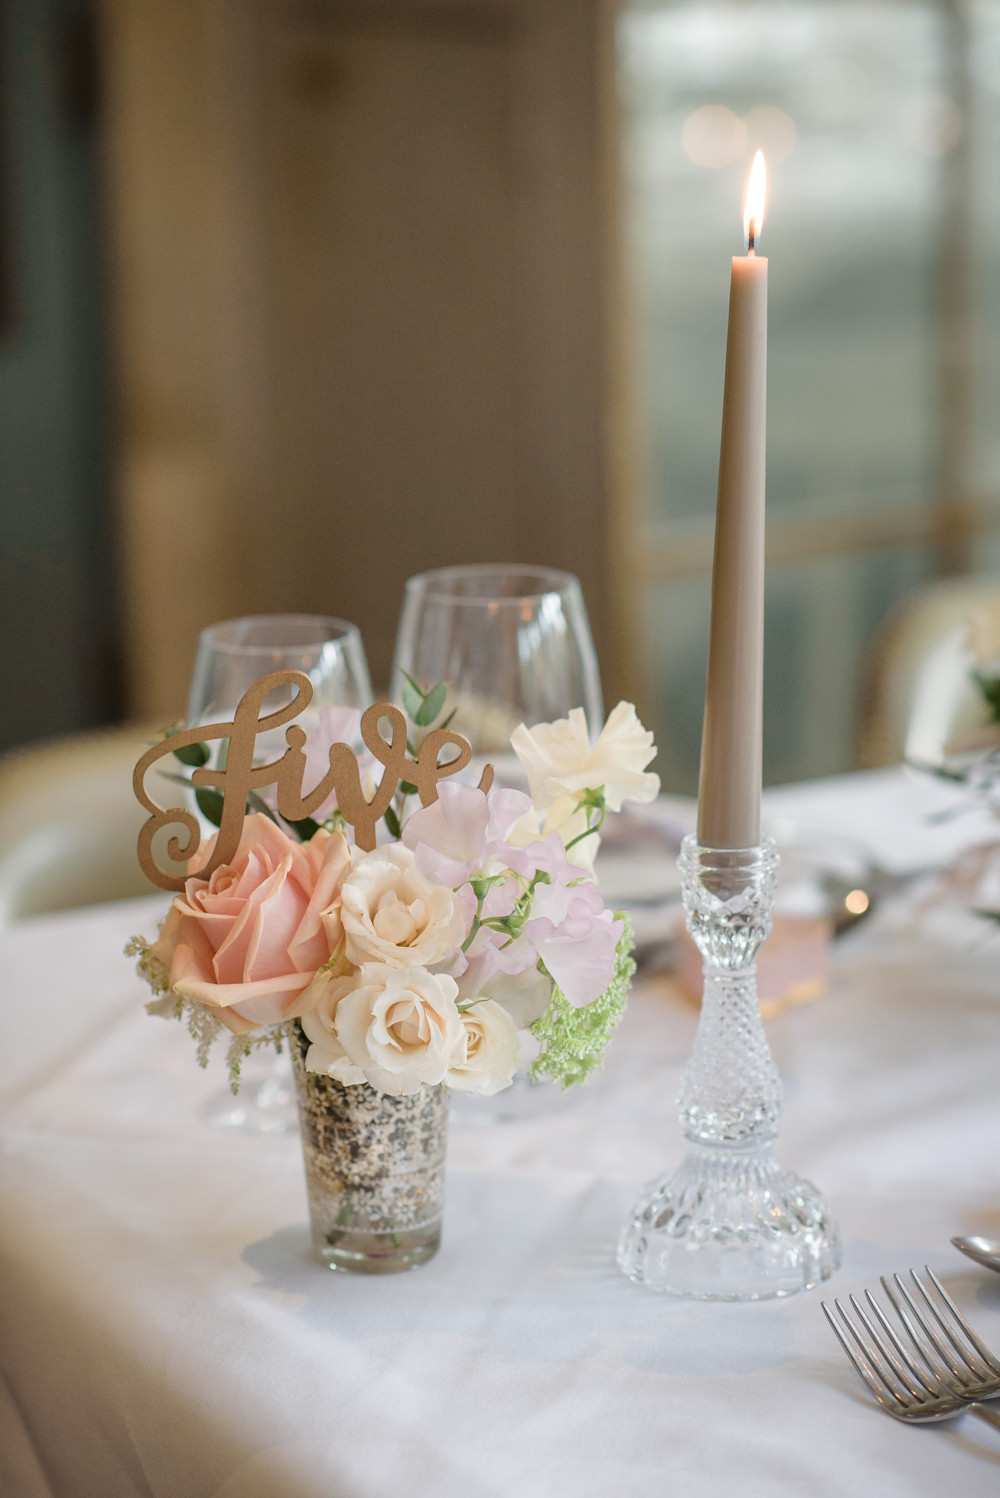 Table Number Laser Cut Wooden Calligraphy Votive Glass Candlestick Babington House Wedding Ria Mishaal Photography